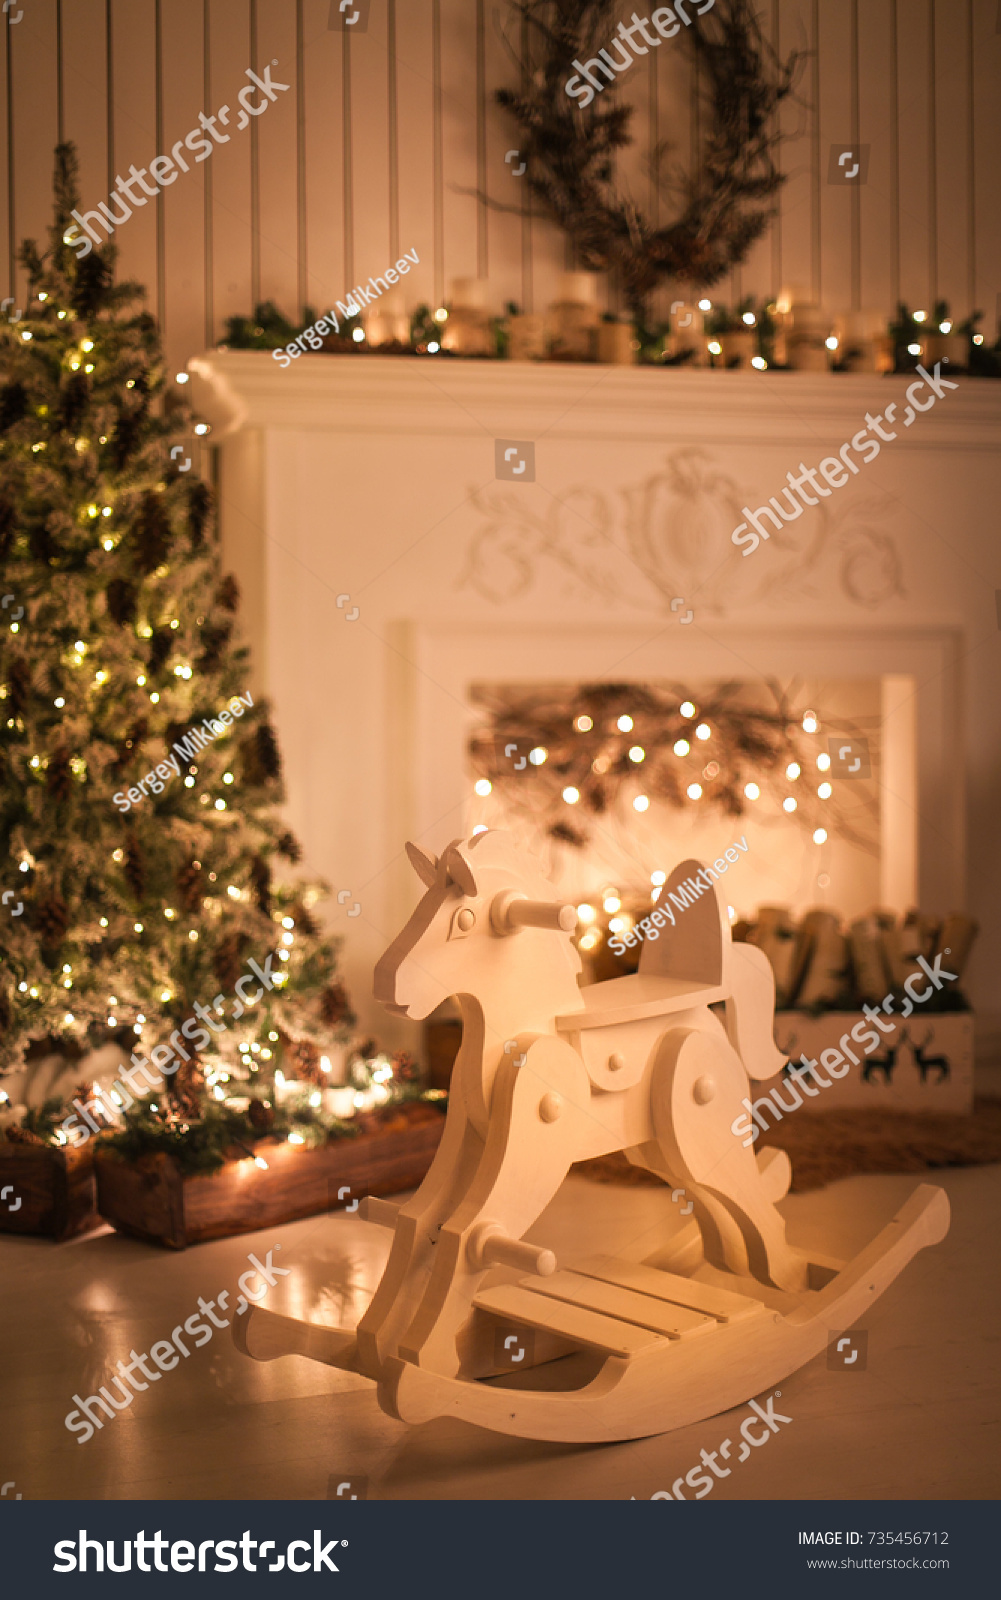 rocking horse on the background of christmas decorations - Horse Christmas Decorations